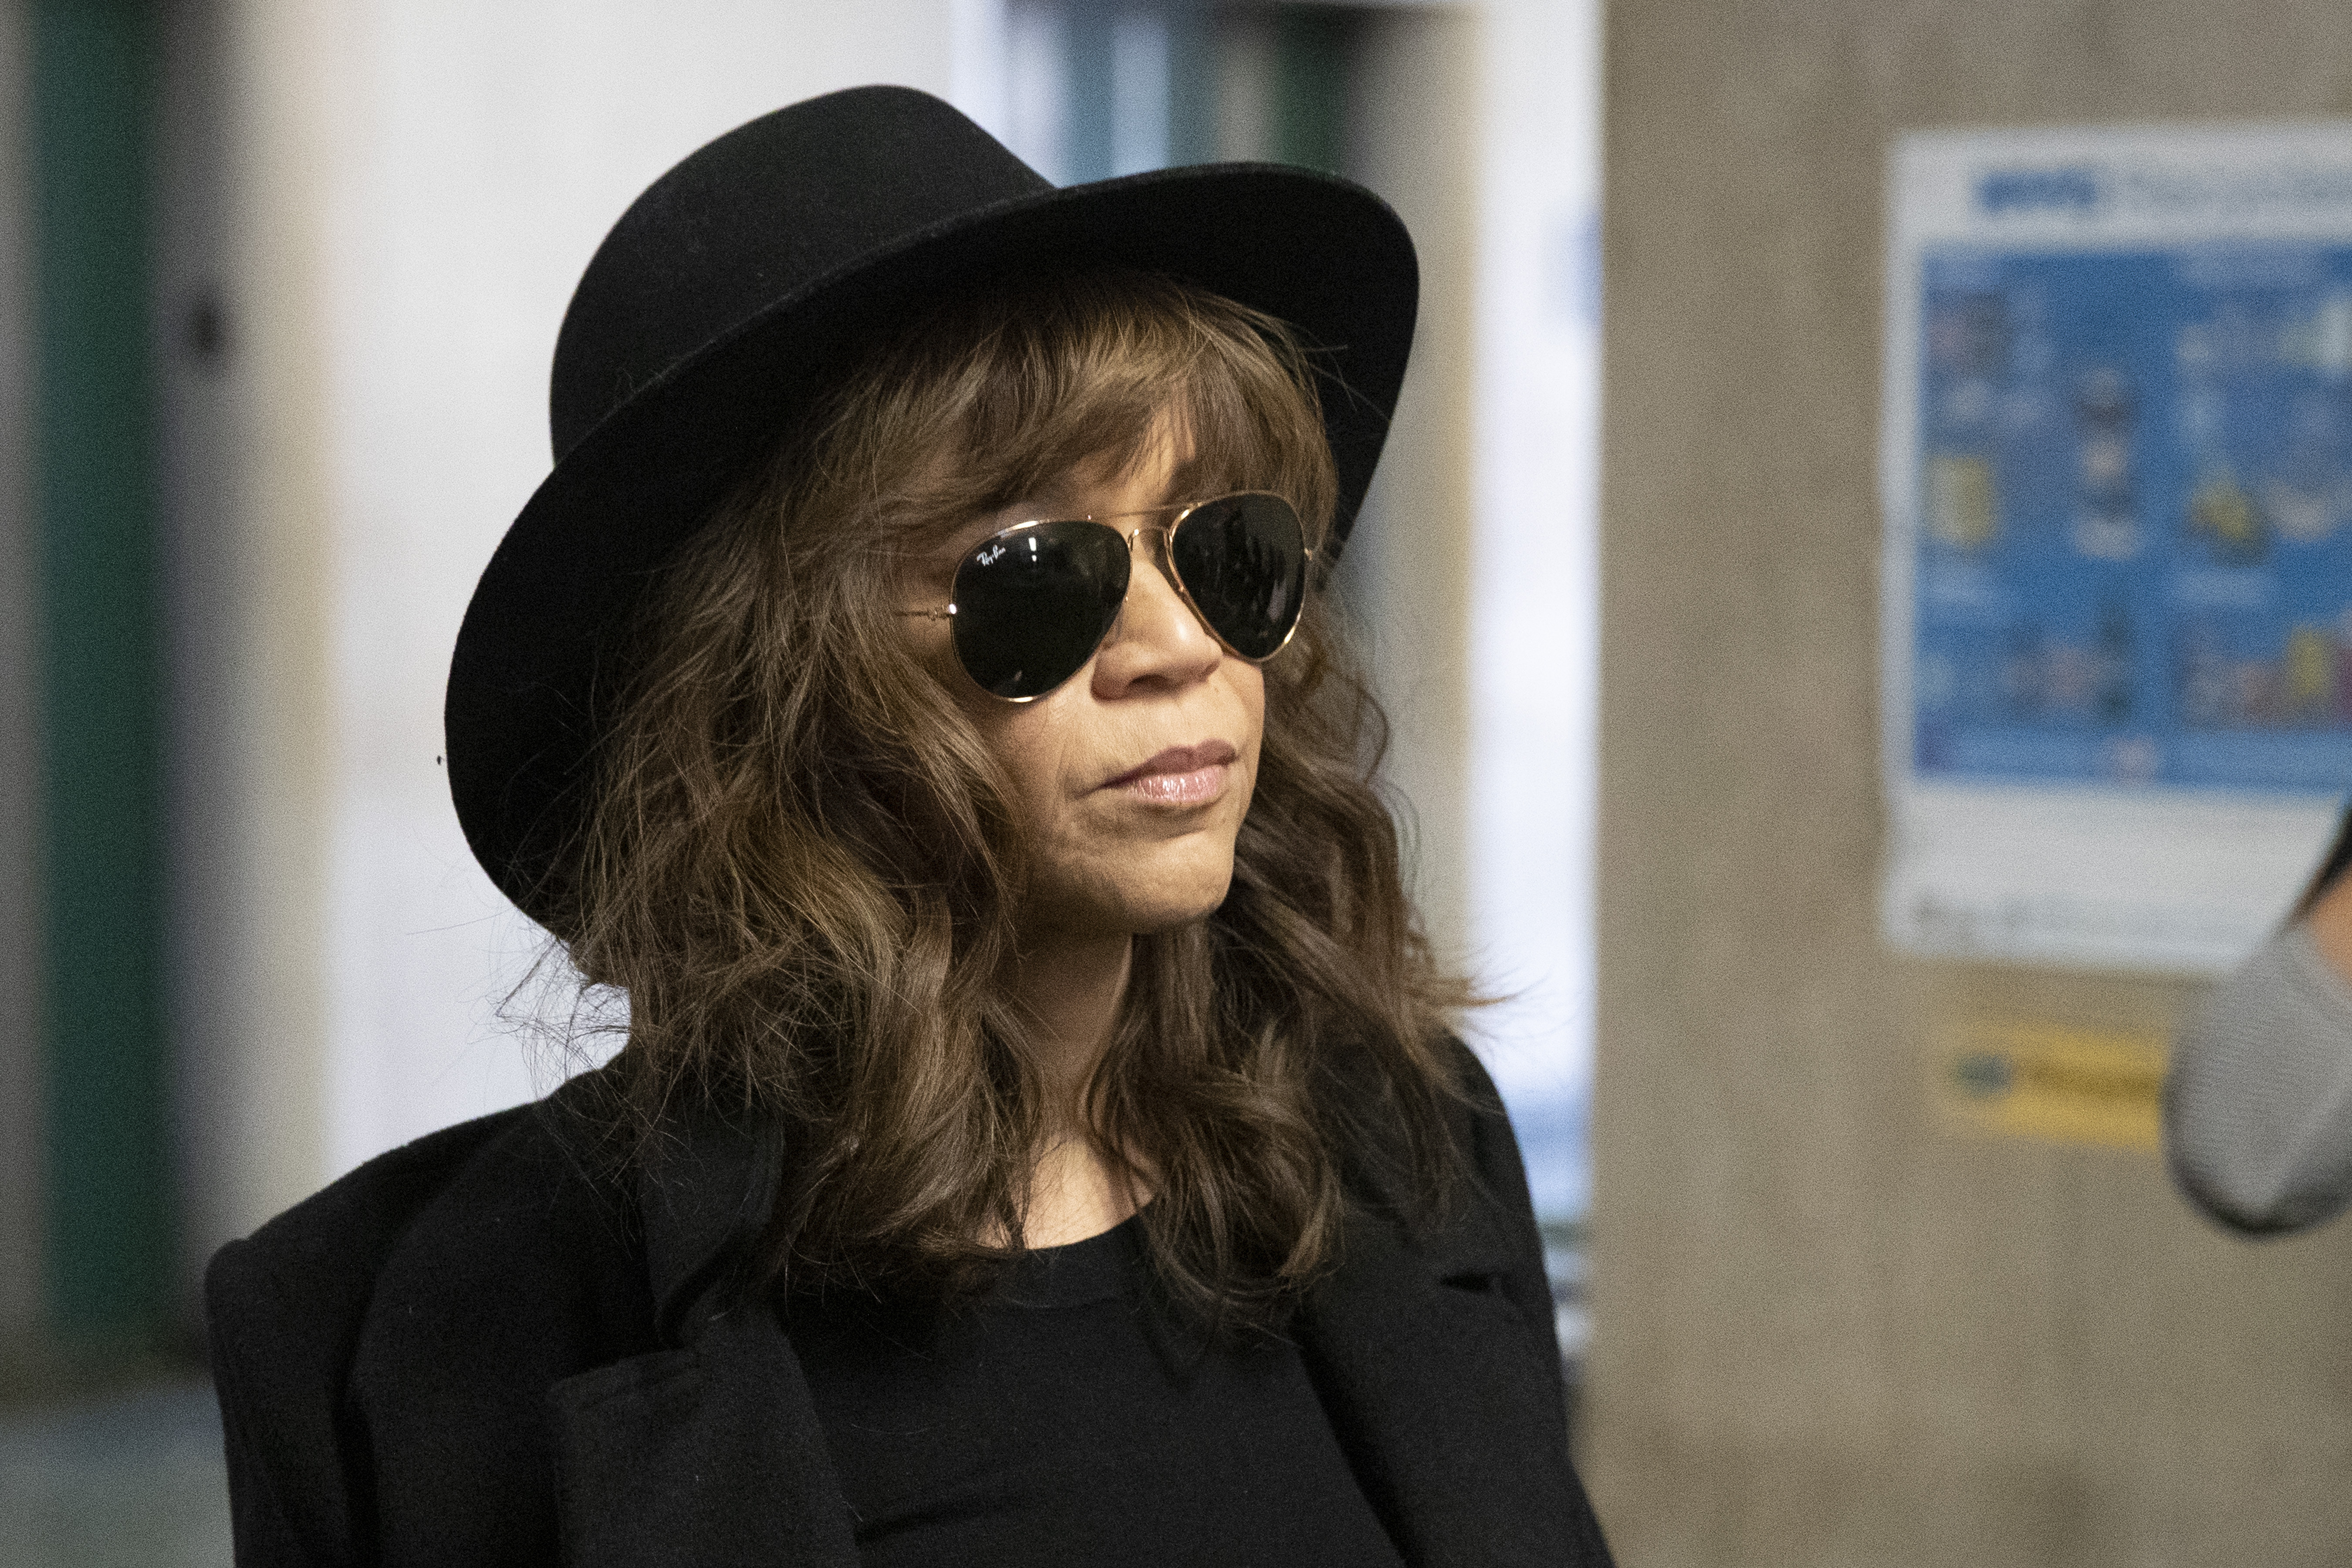 Actress Rosie Perez arrives for Harvey Weinstein's rape trial, Friday, Jan. 24, 2020 in New York.